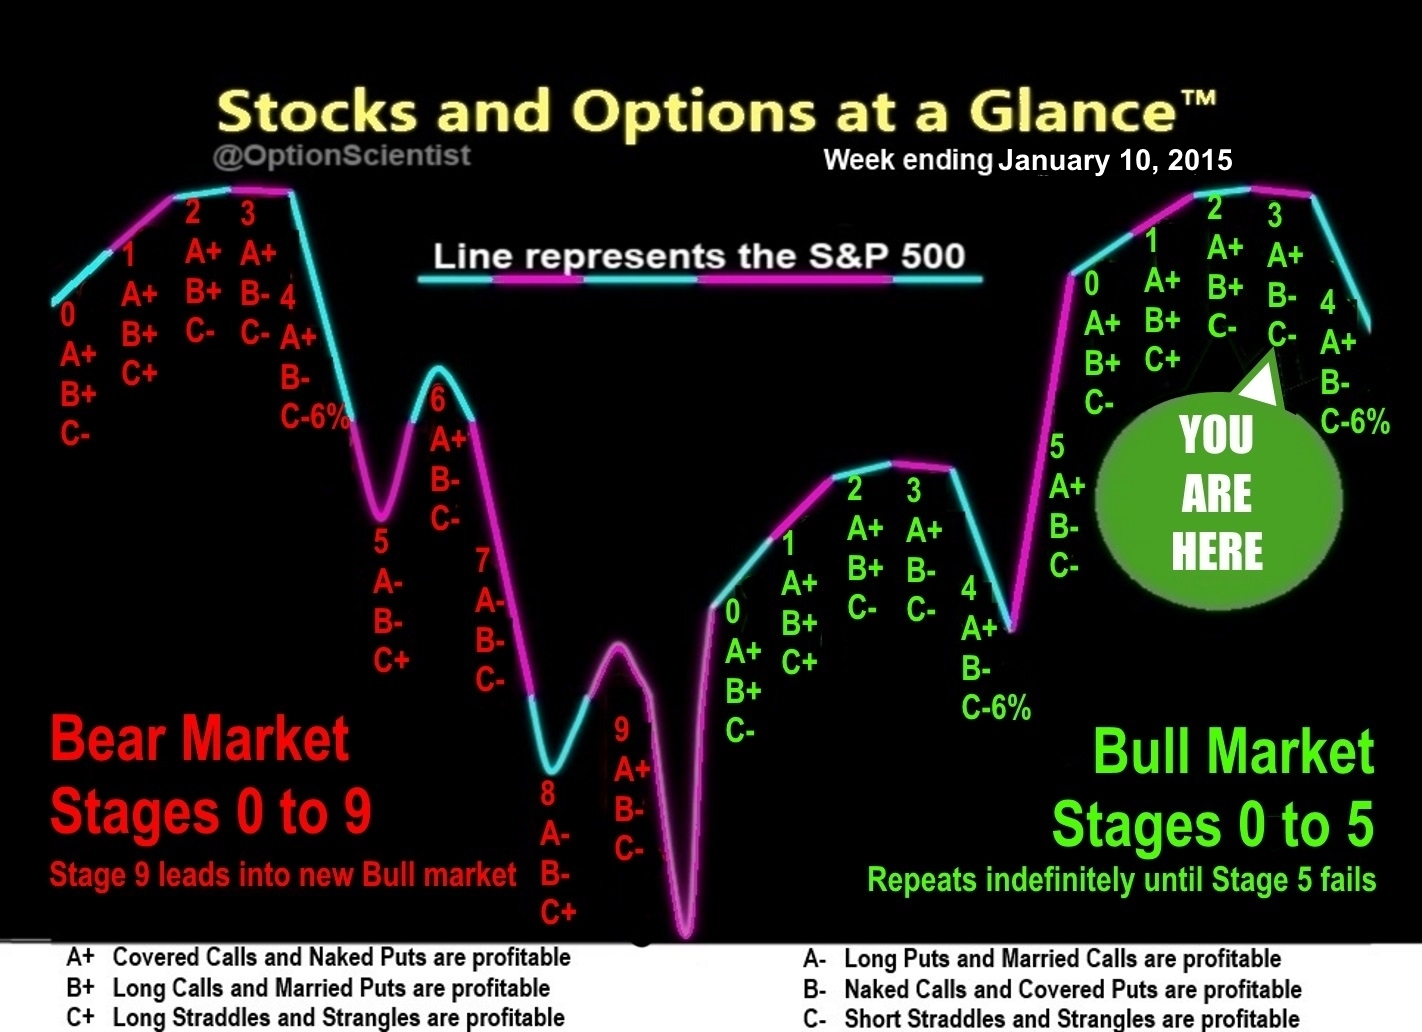 Stocks and Options at a Glance 01-10-15